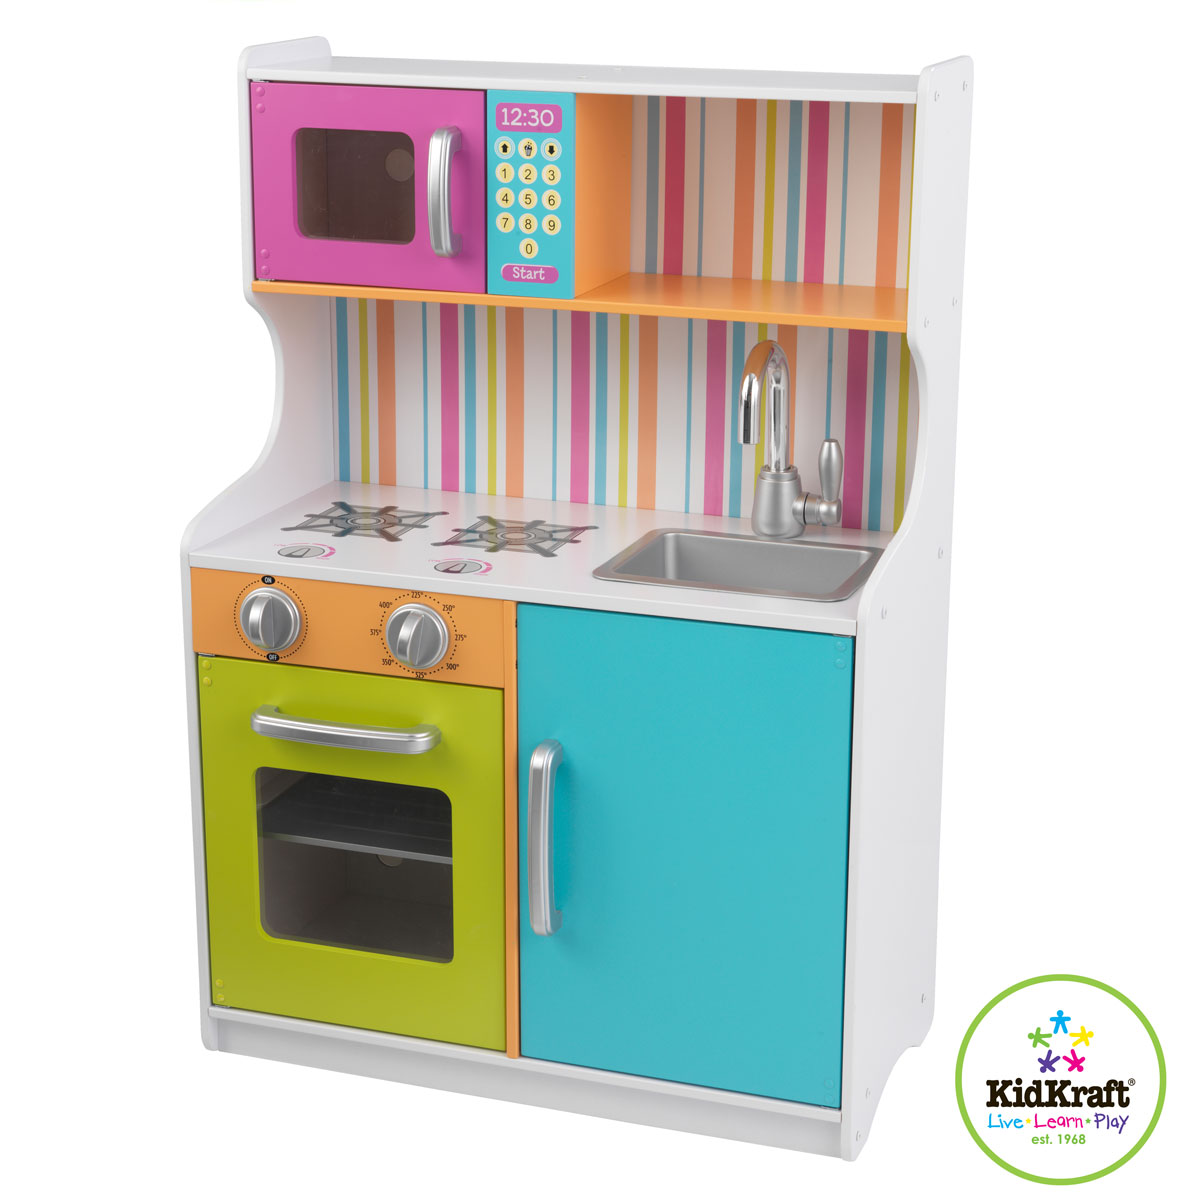 KidKraft Bright Toddler Kitchen 53294